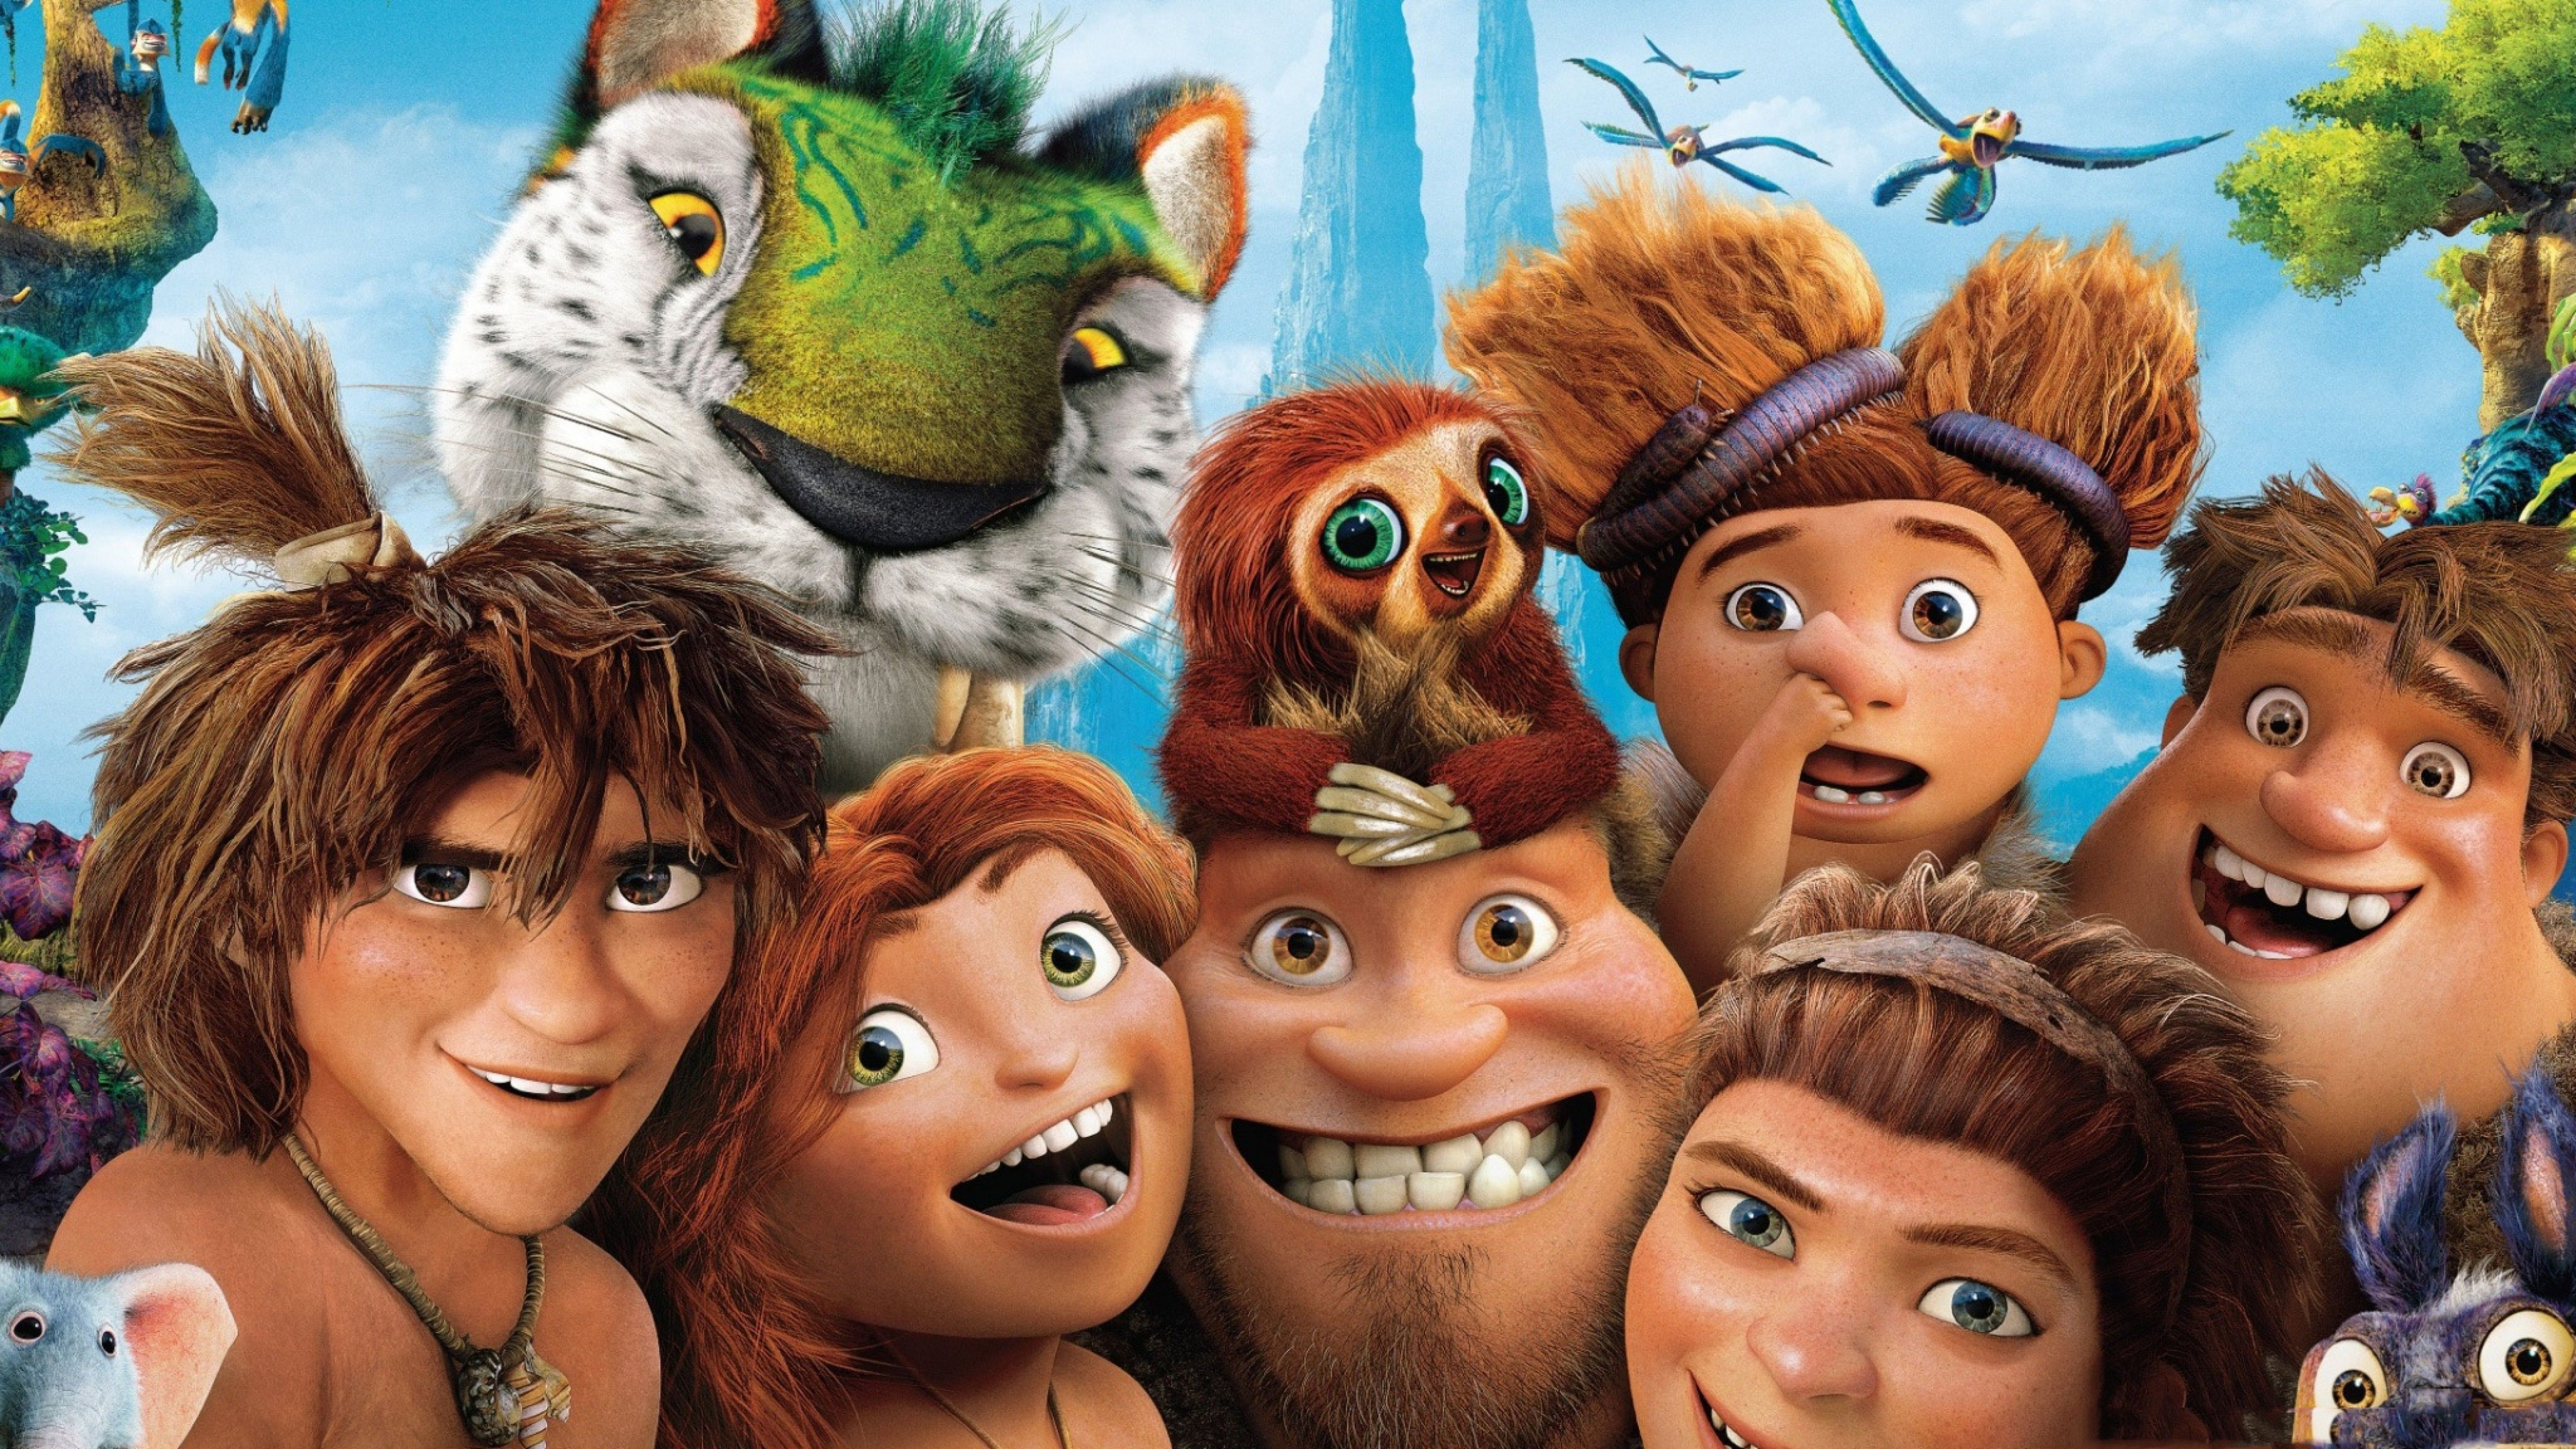 The Croods 2 5k best animation movies 7235 in 2019